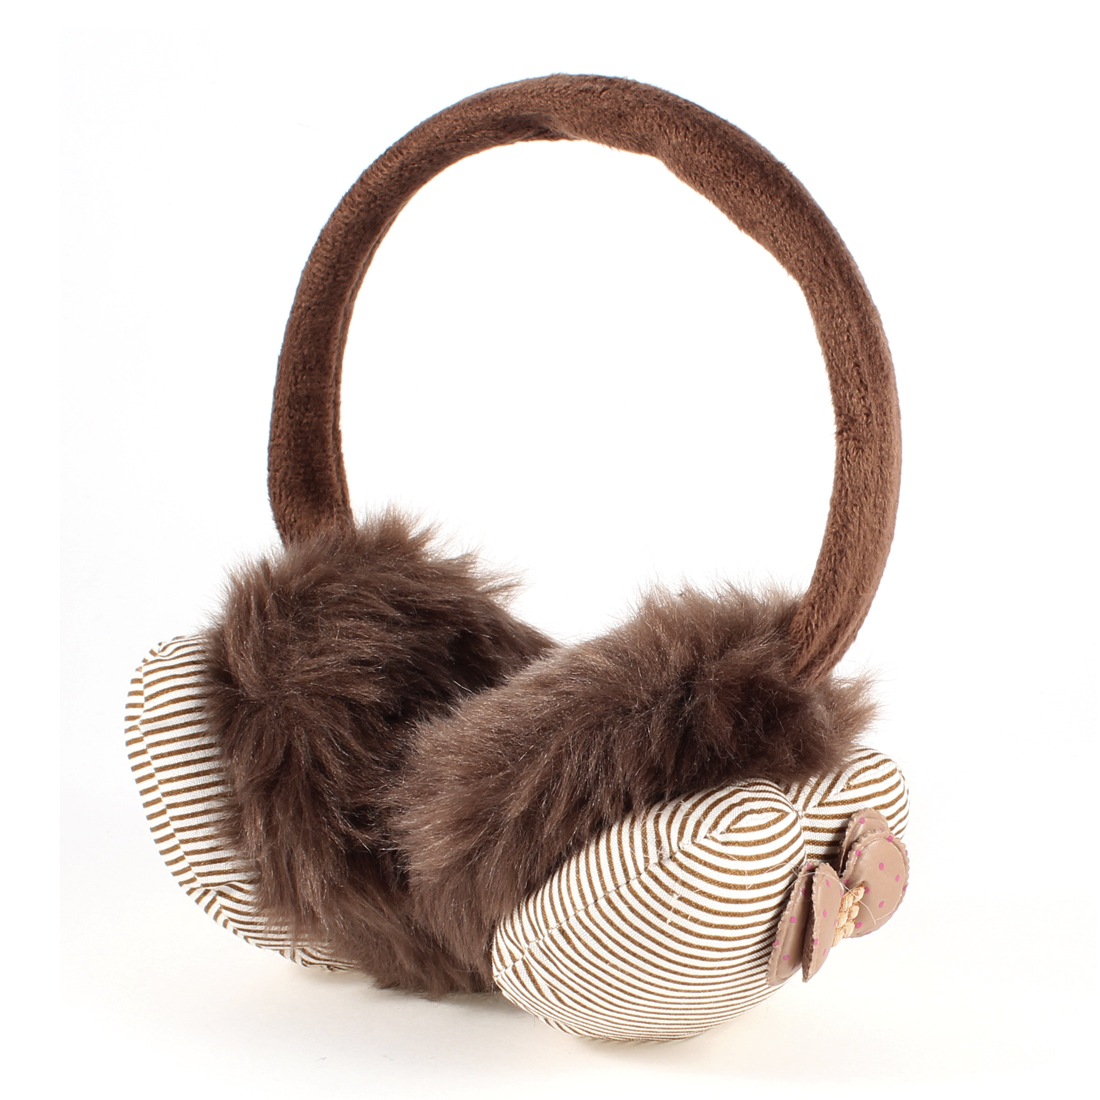 Chocolate Color Stripe Pattern Round Back Winter Ear Warmers Cover Earmuffs for Women